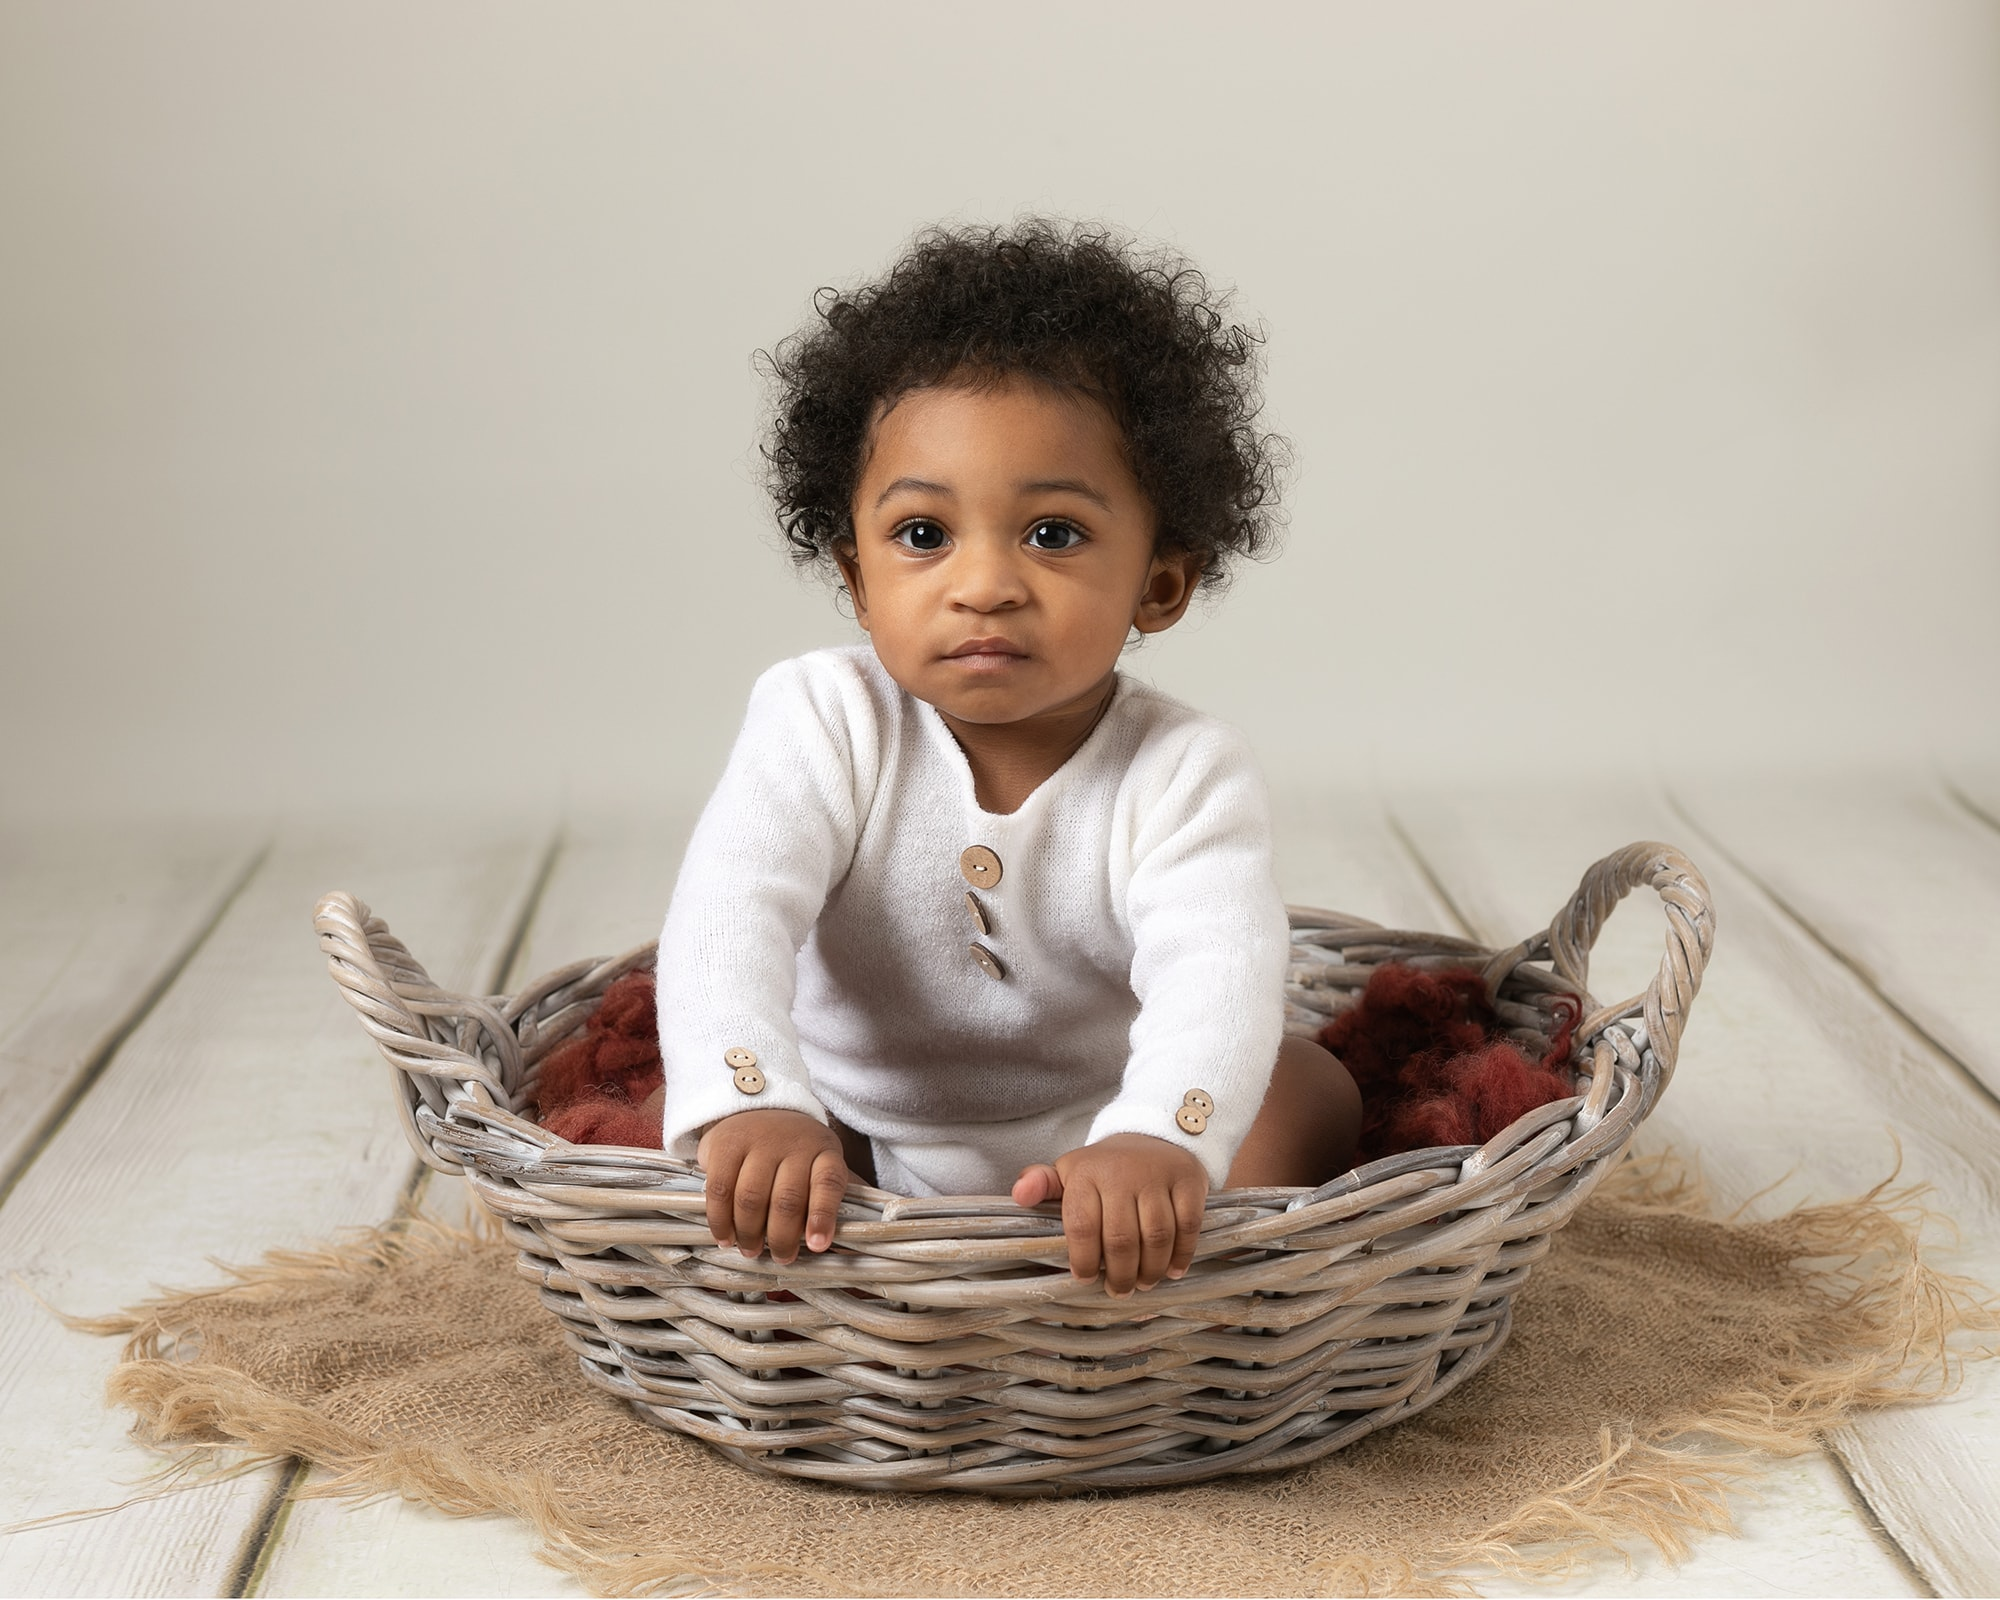 Baby boy wearing white rompers sat in a cream bowl on brown fluff, leaning forward looking at the camera. Image taken by award winning baby photography in Glasgow